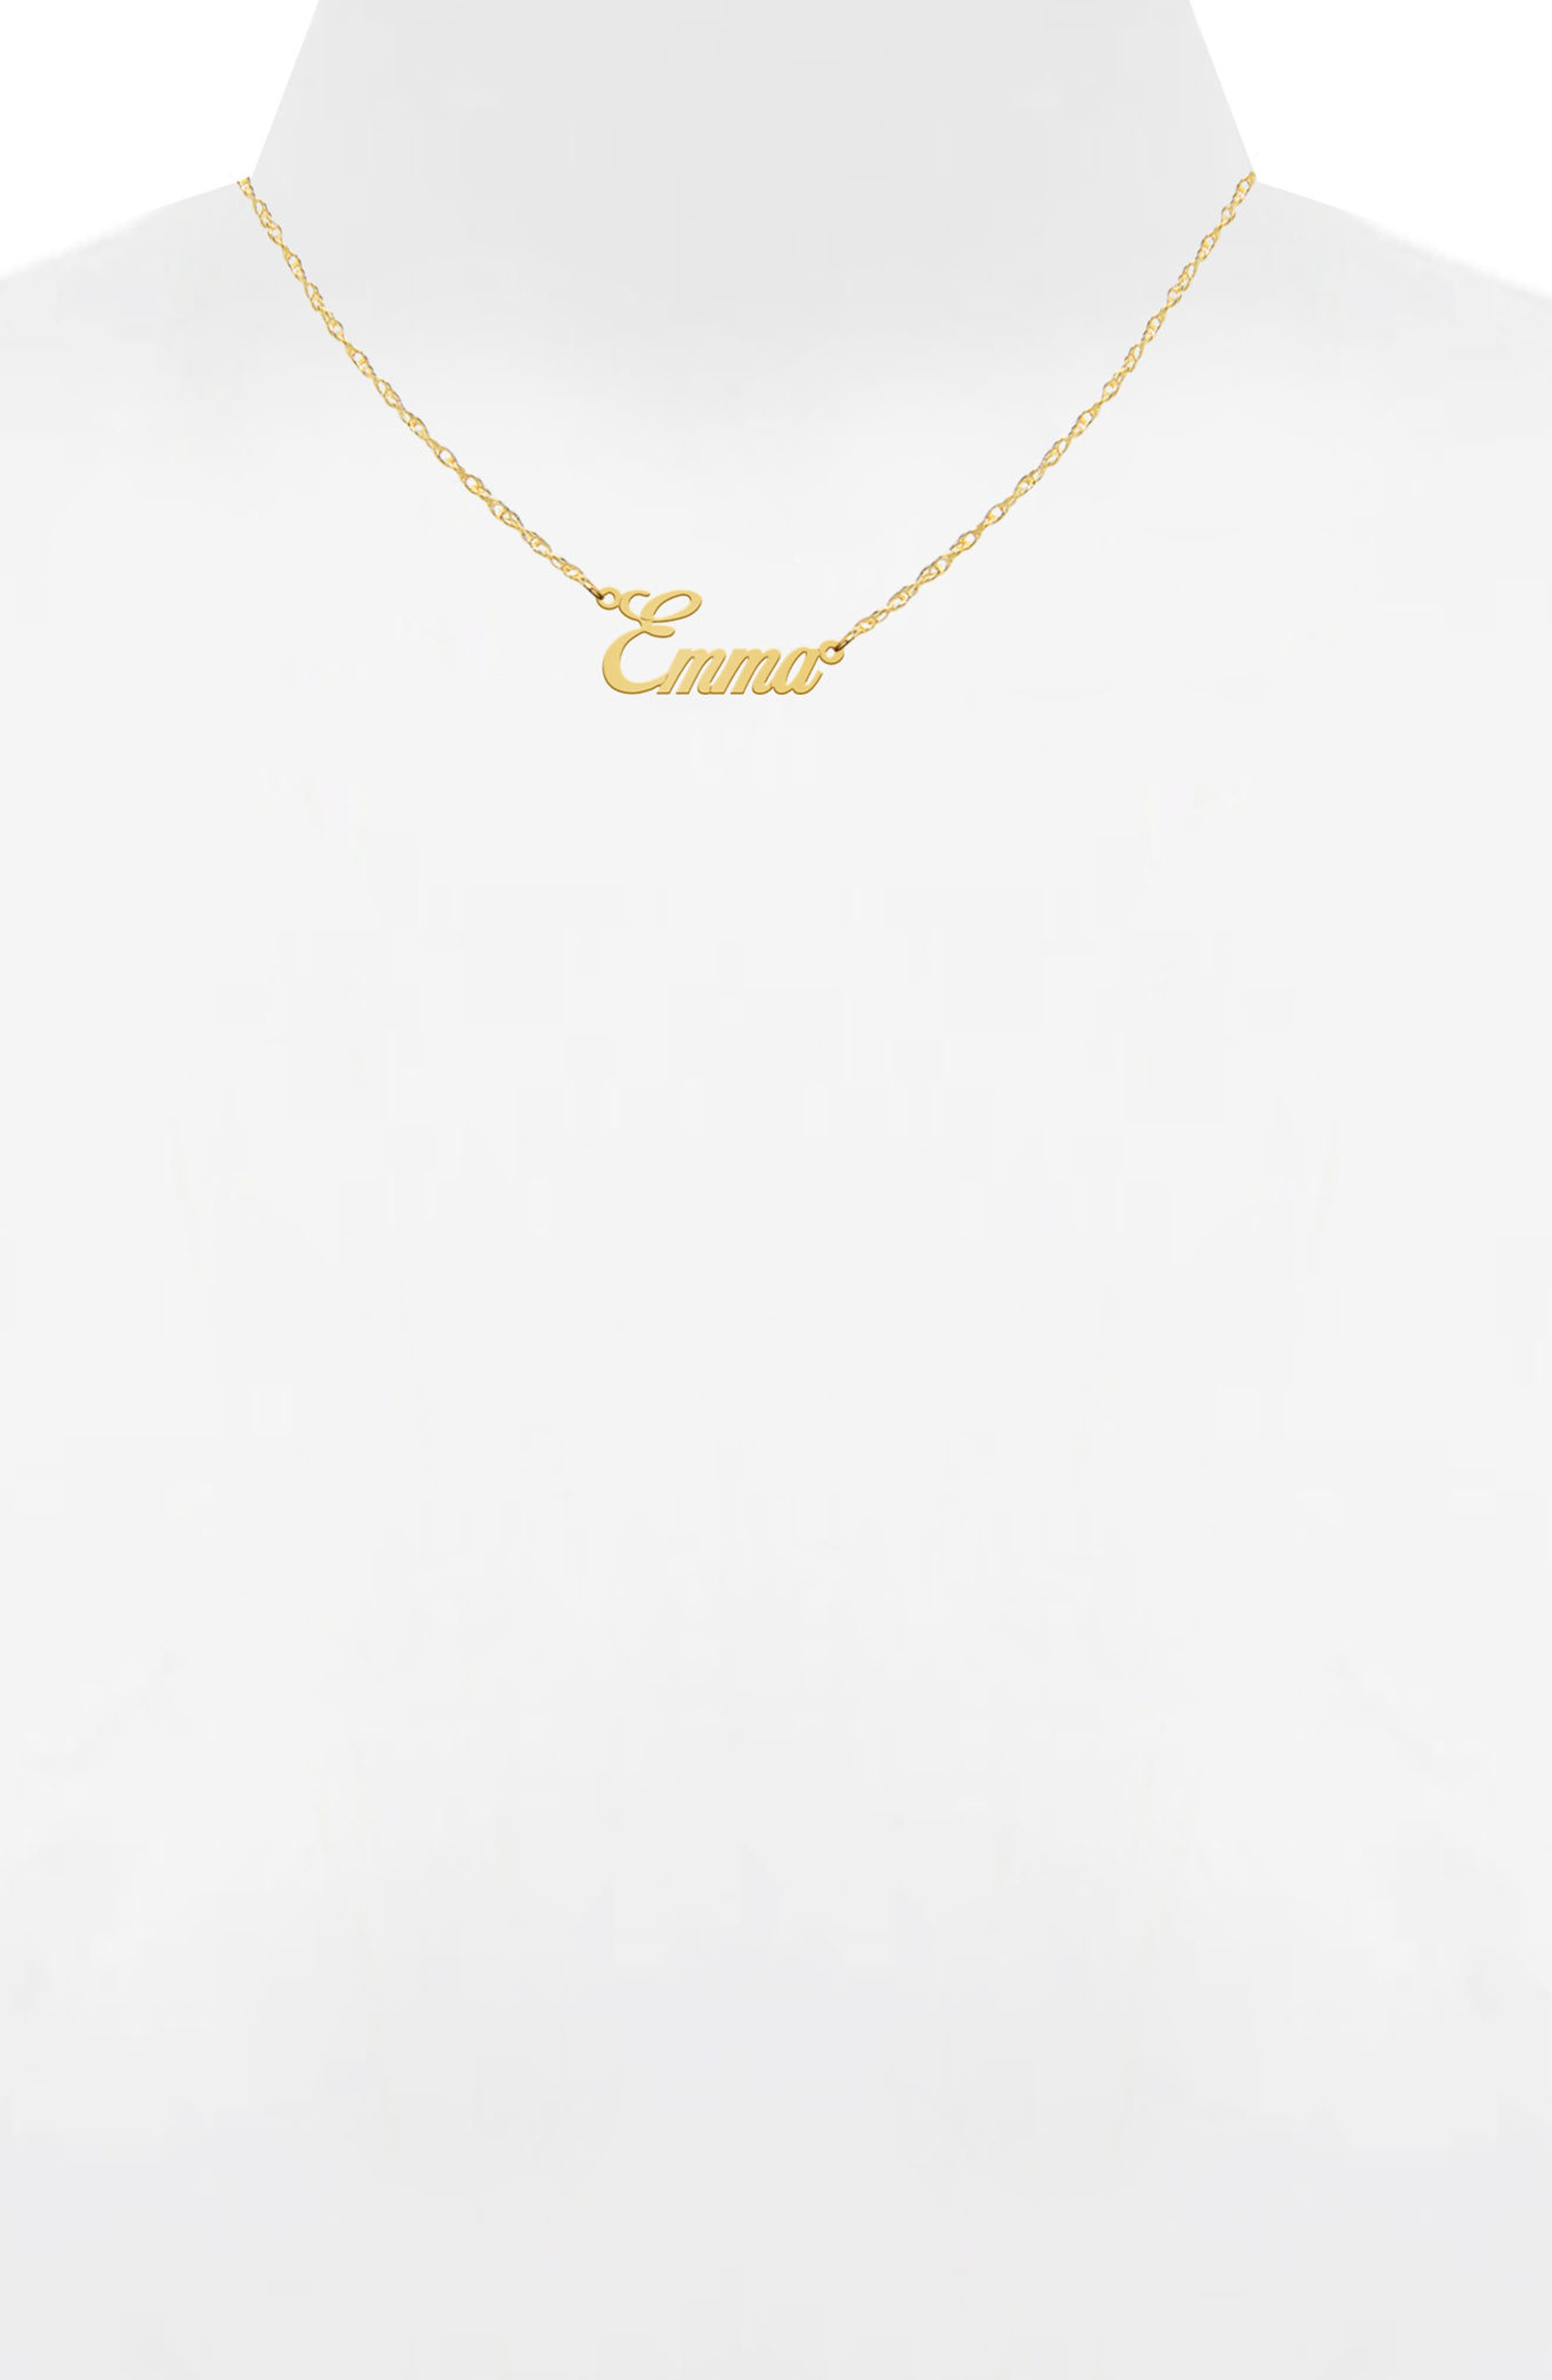 Jane Basch Personalized Nameplate Necklace,                             Alternate thumbnail 2, color,                             14K YELLOW GOLD